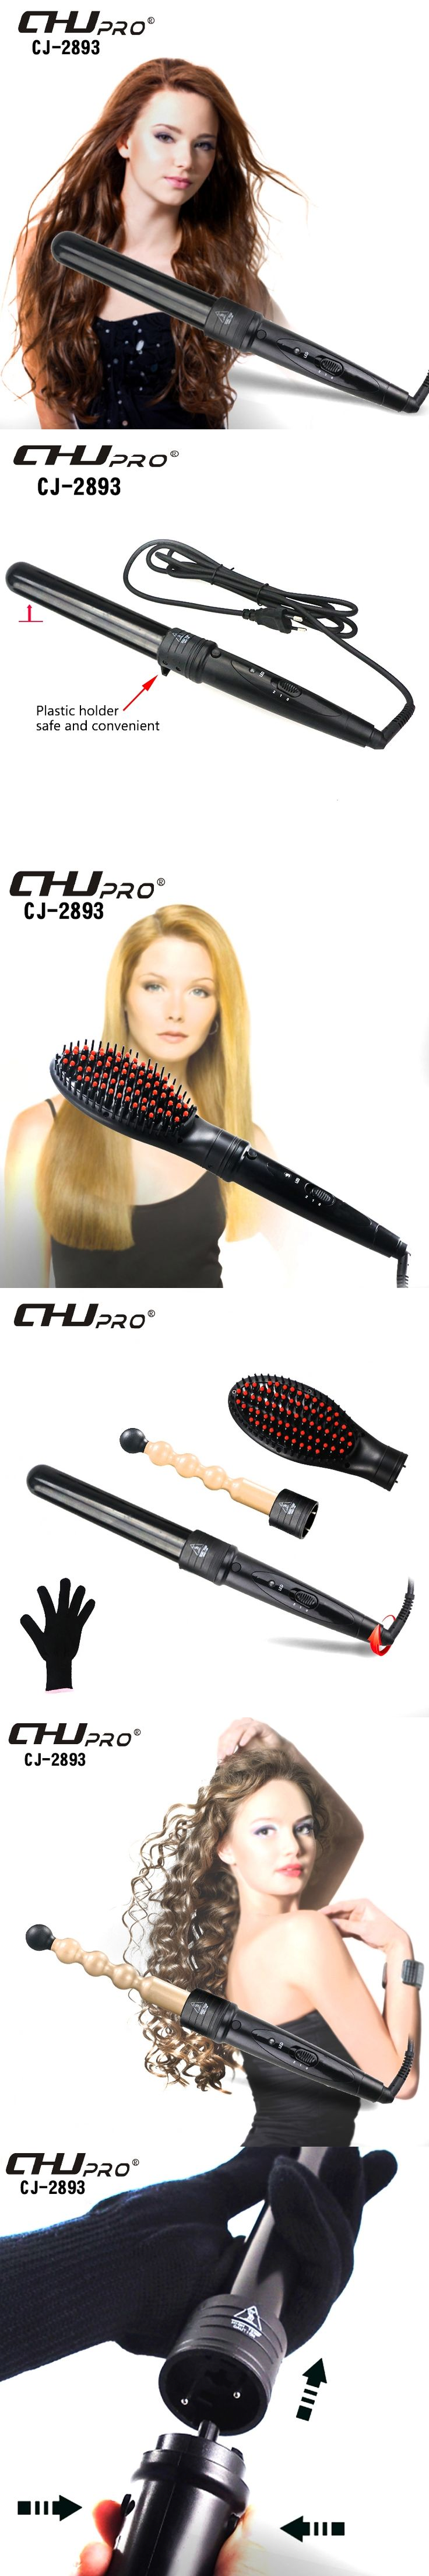 Ceramic Curling Iron Interchangeable Hair Curler Set With Electric Straightening Combs Curling Wand Styling Tool